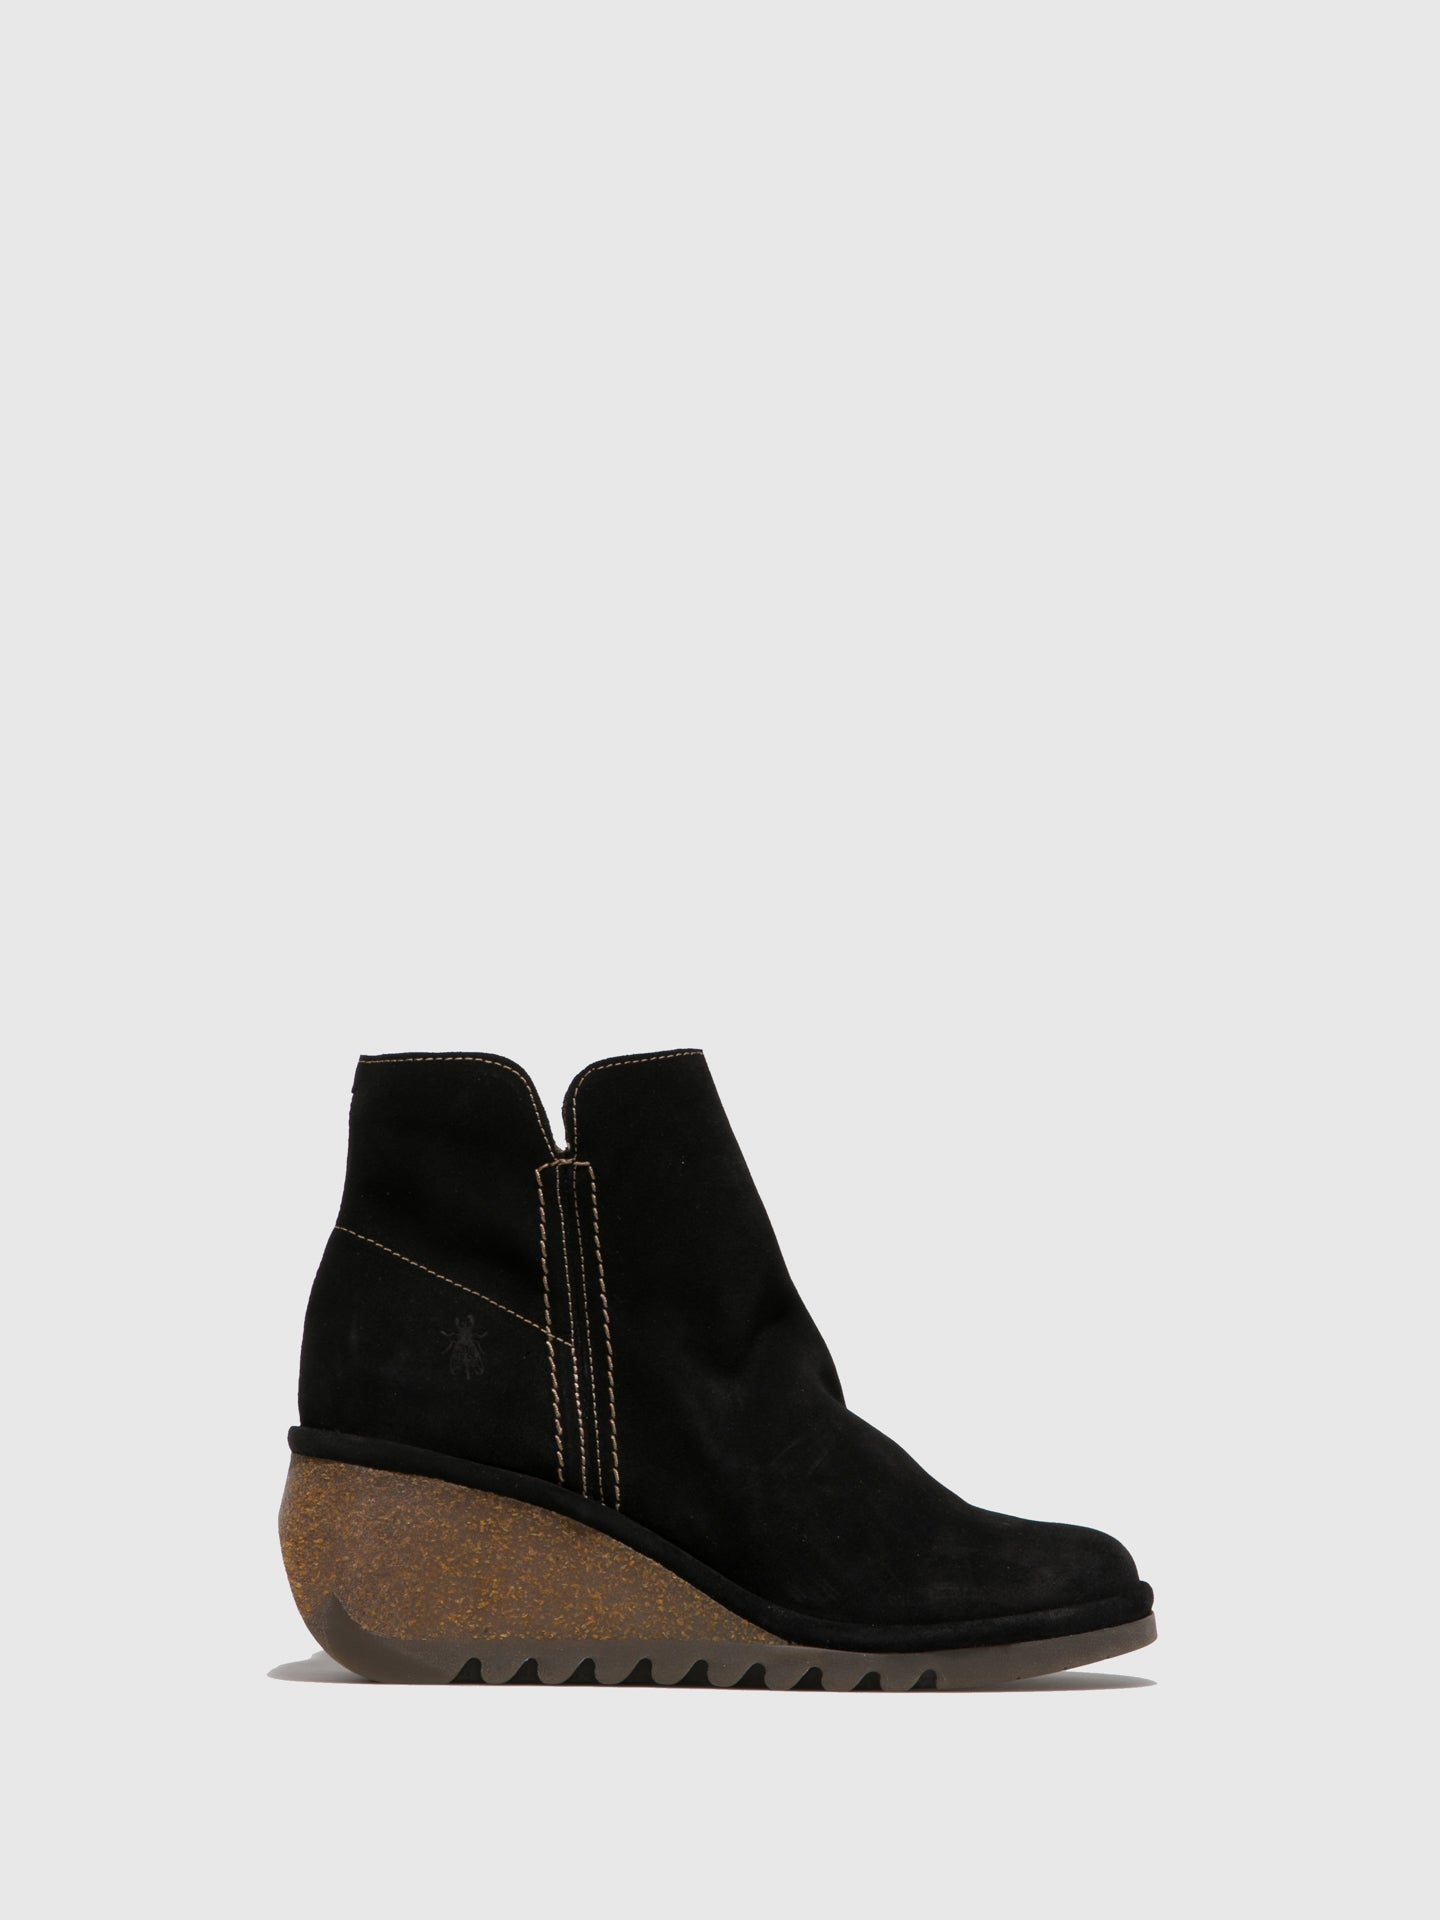 Fly London Black Suede Wedge Ankle Boots